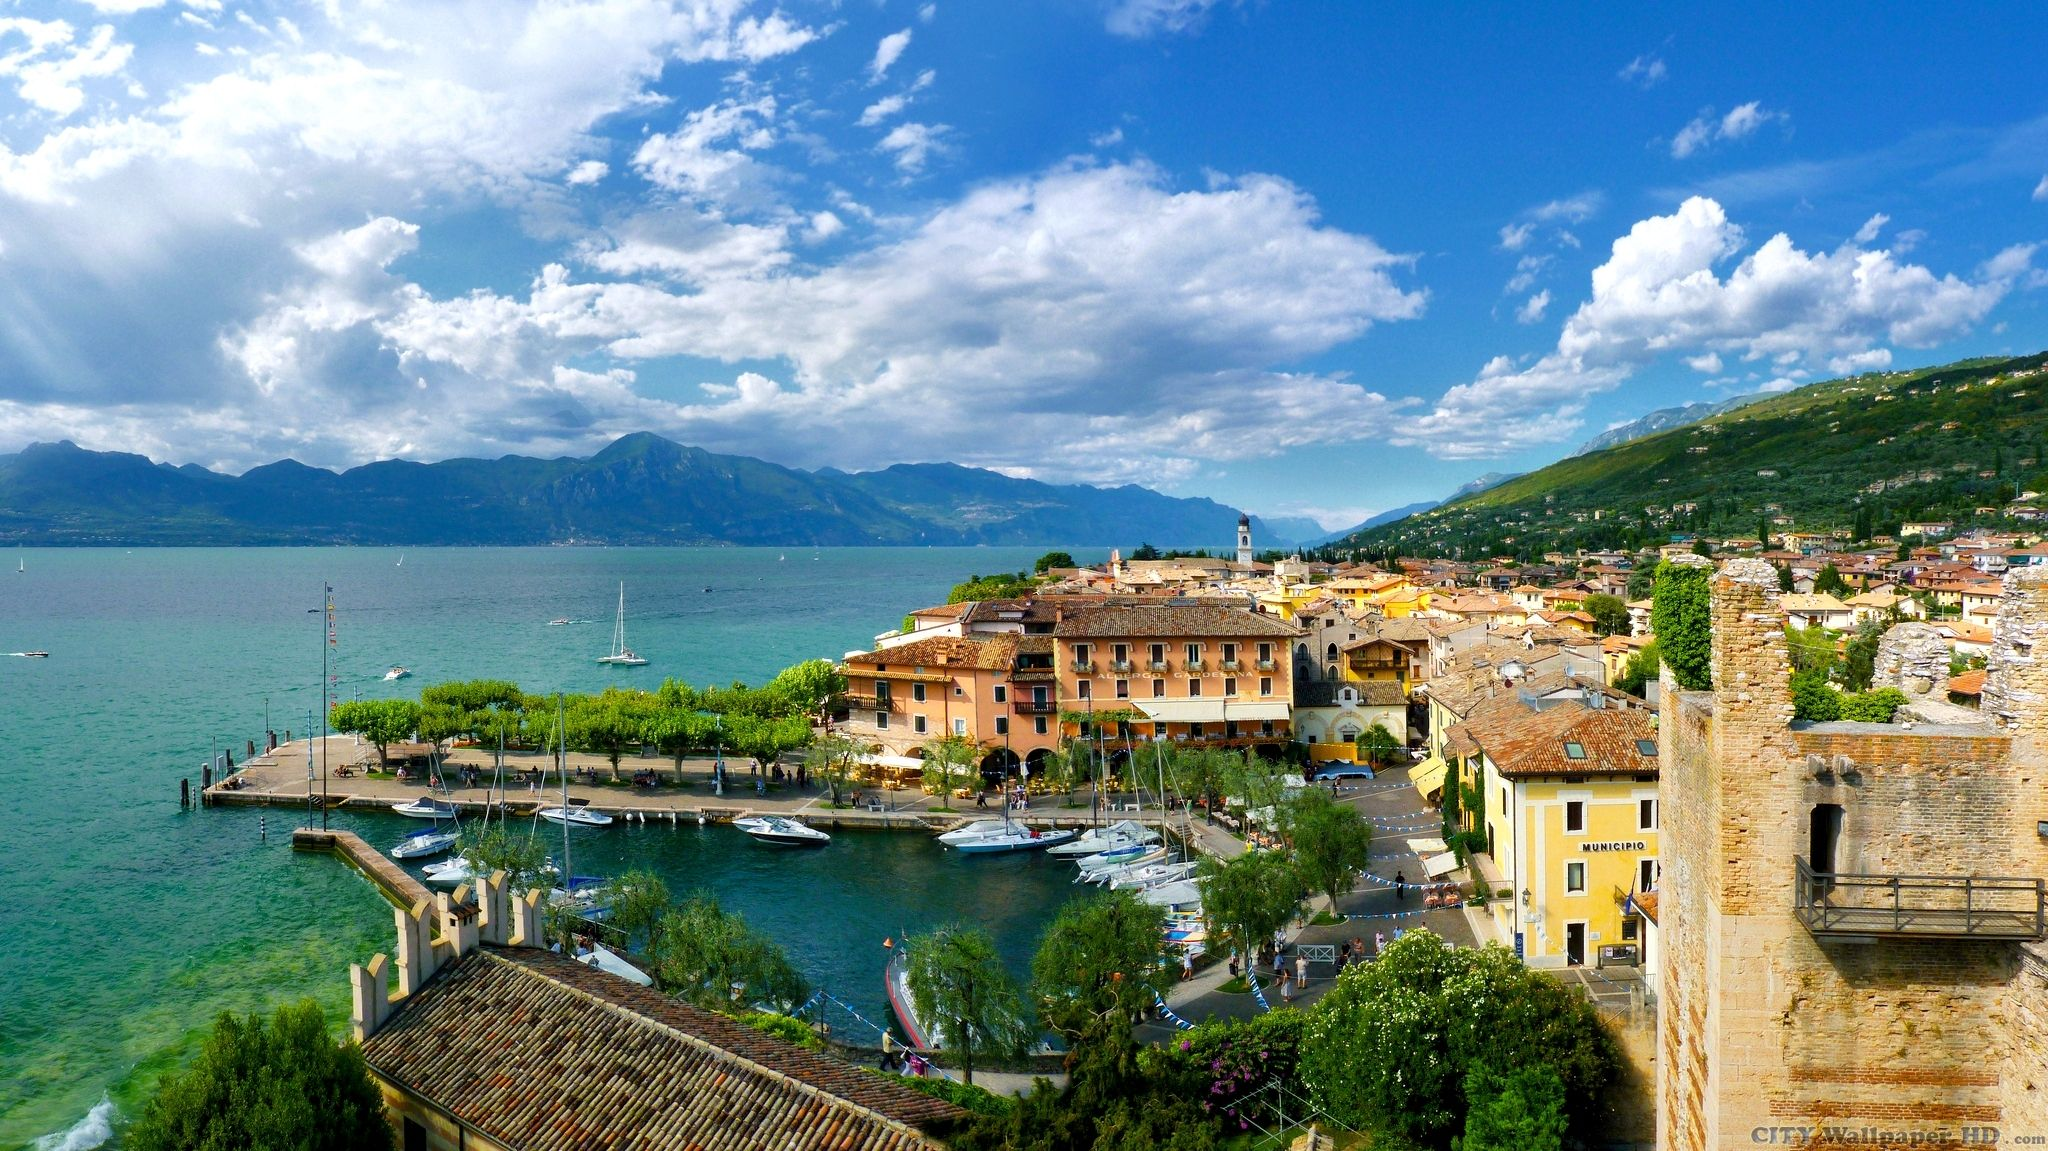 bright-sunny-wallpaper-torri-del-benaco.jpg